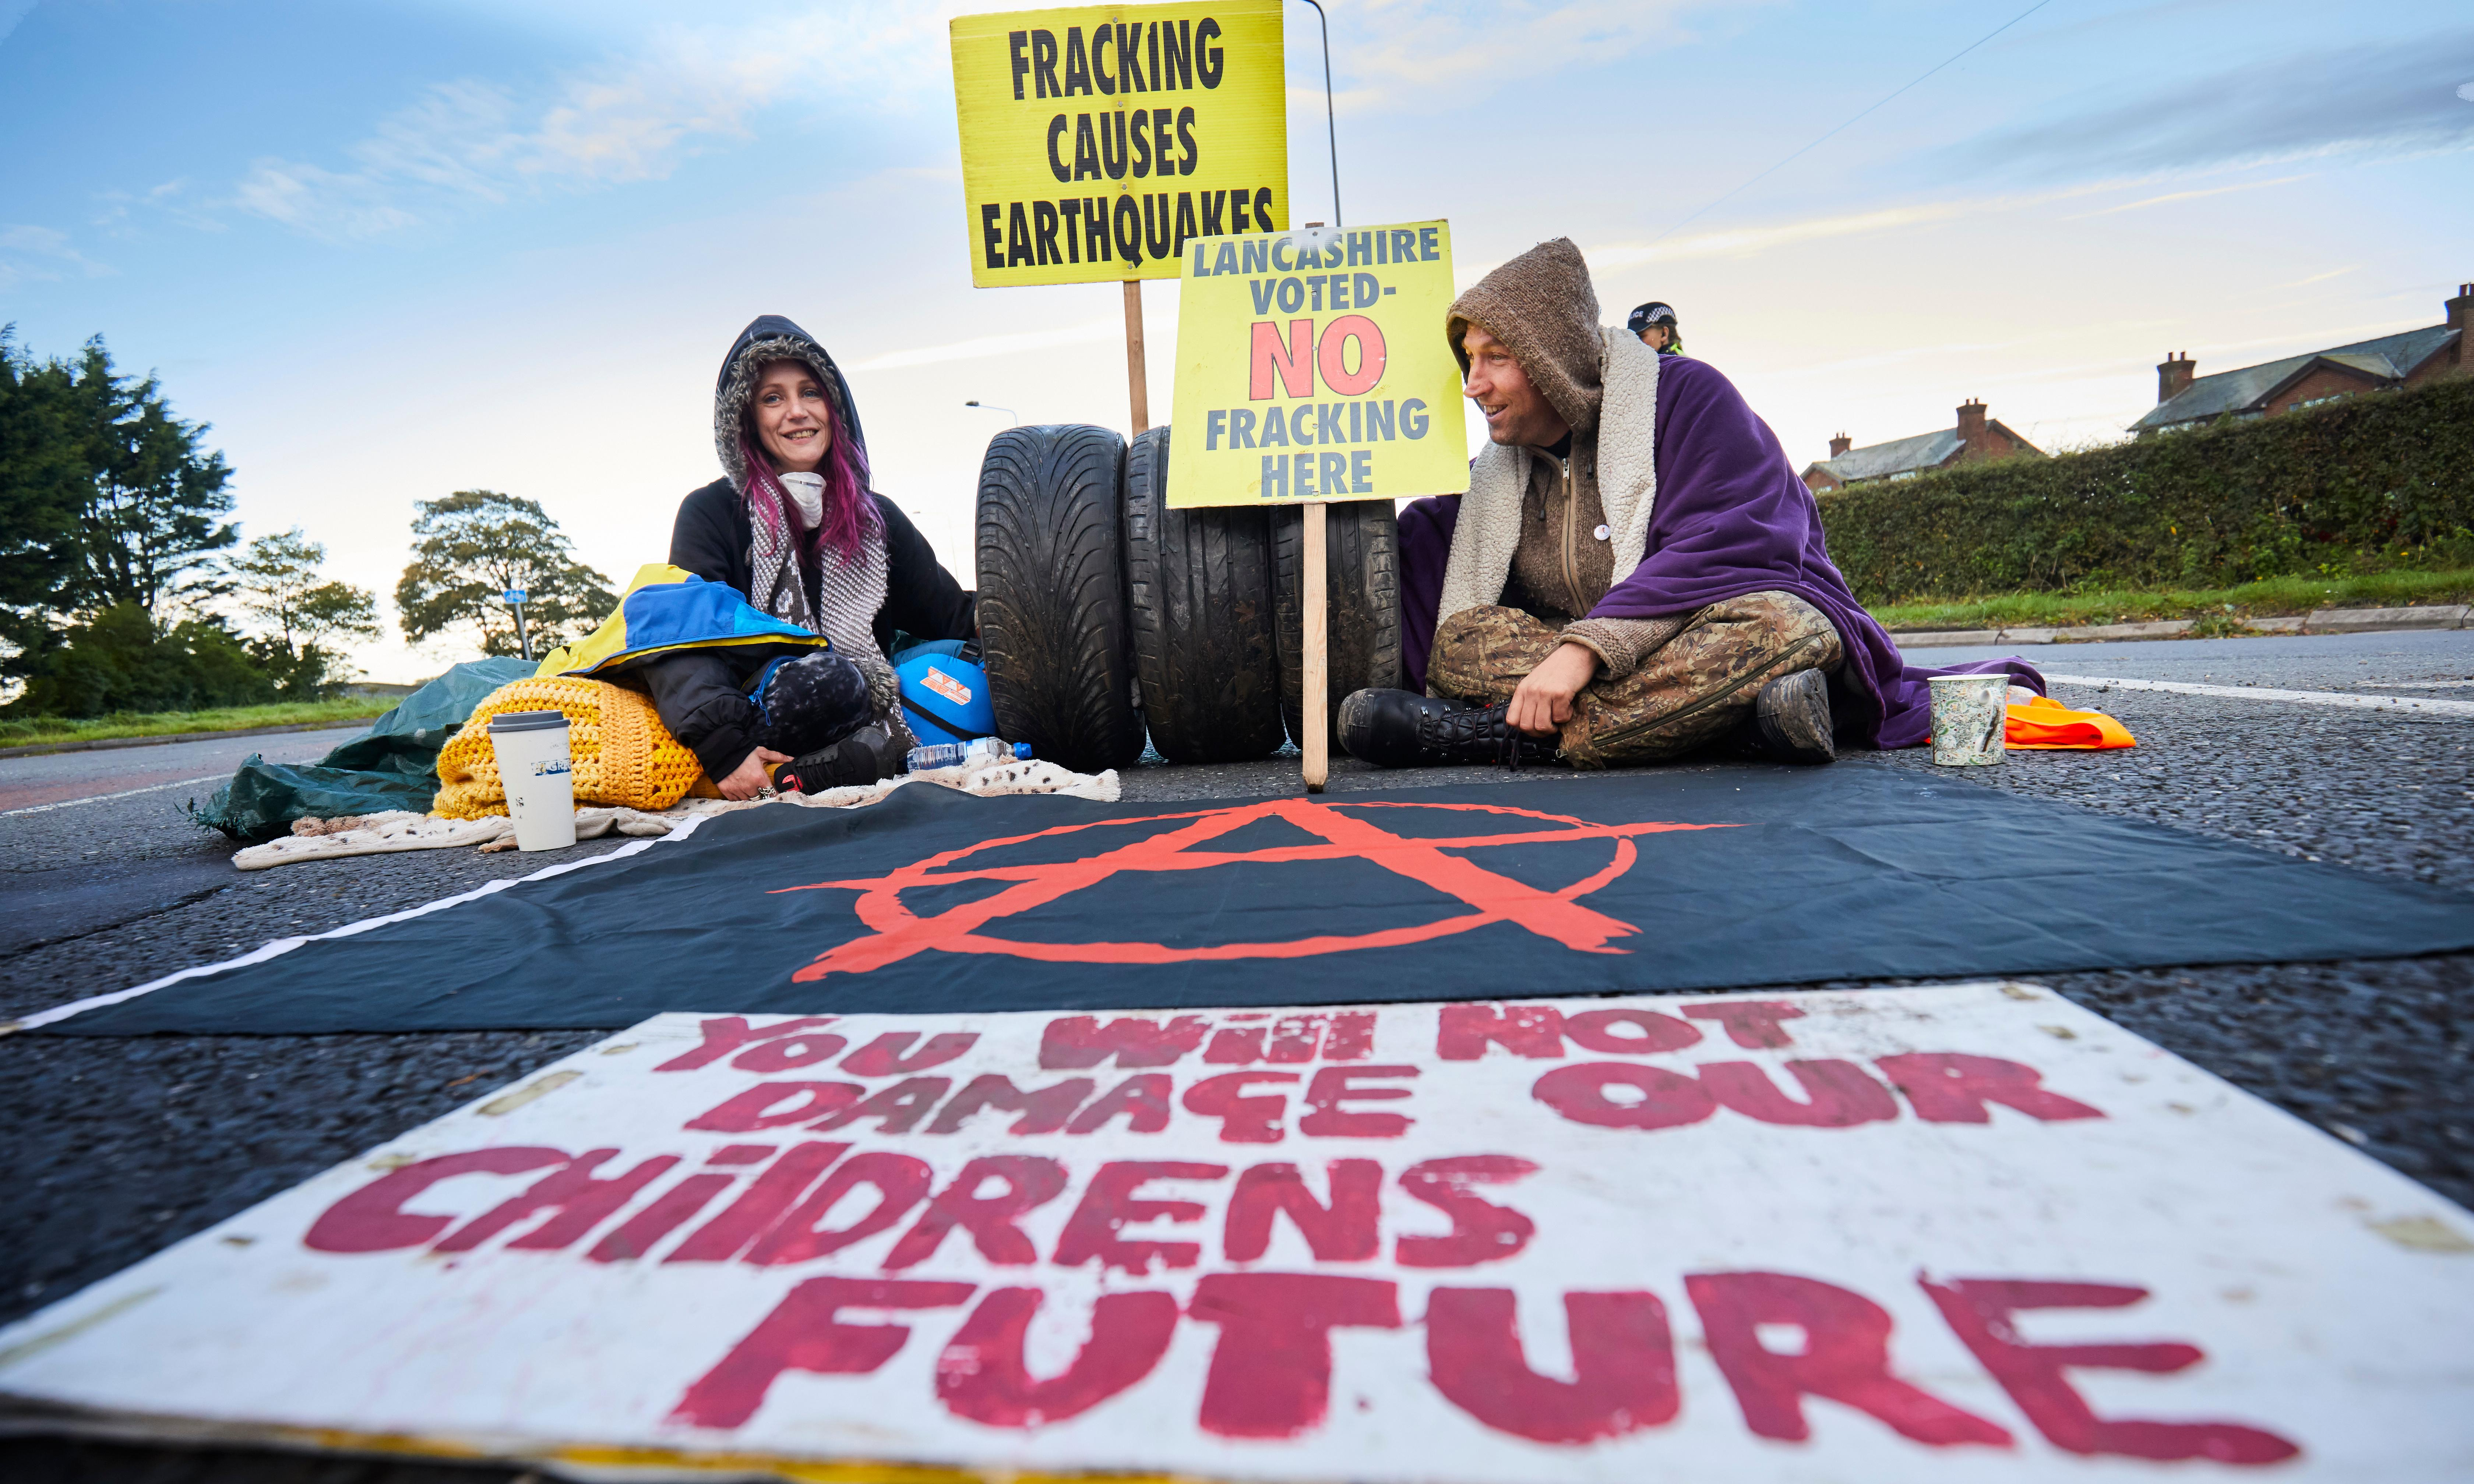 Fracking plan 'will release same C02 as 300m new cars'